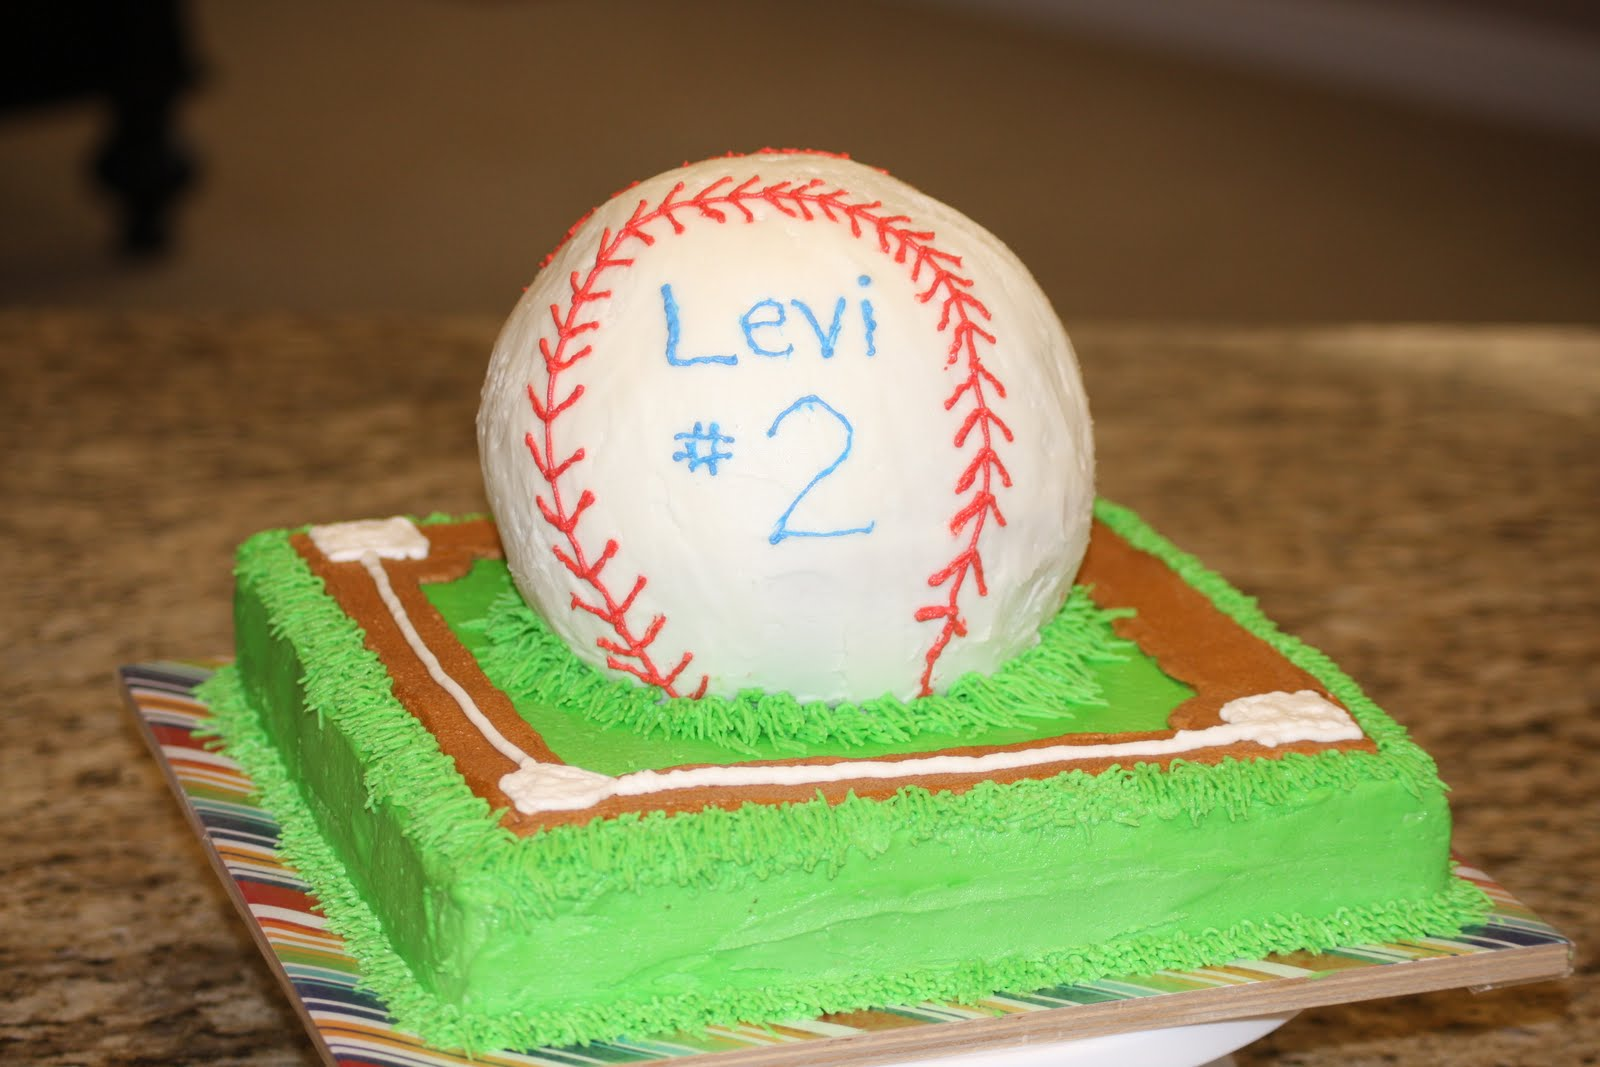 How To Make A Baseball Diamond Cake